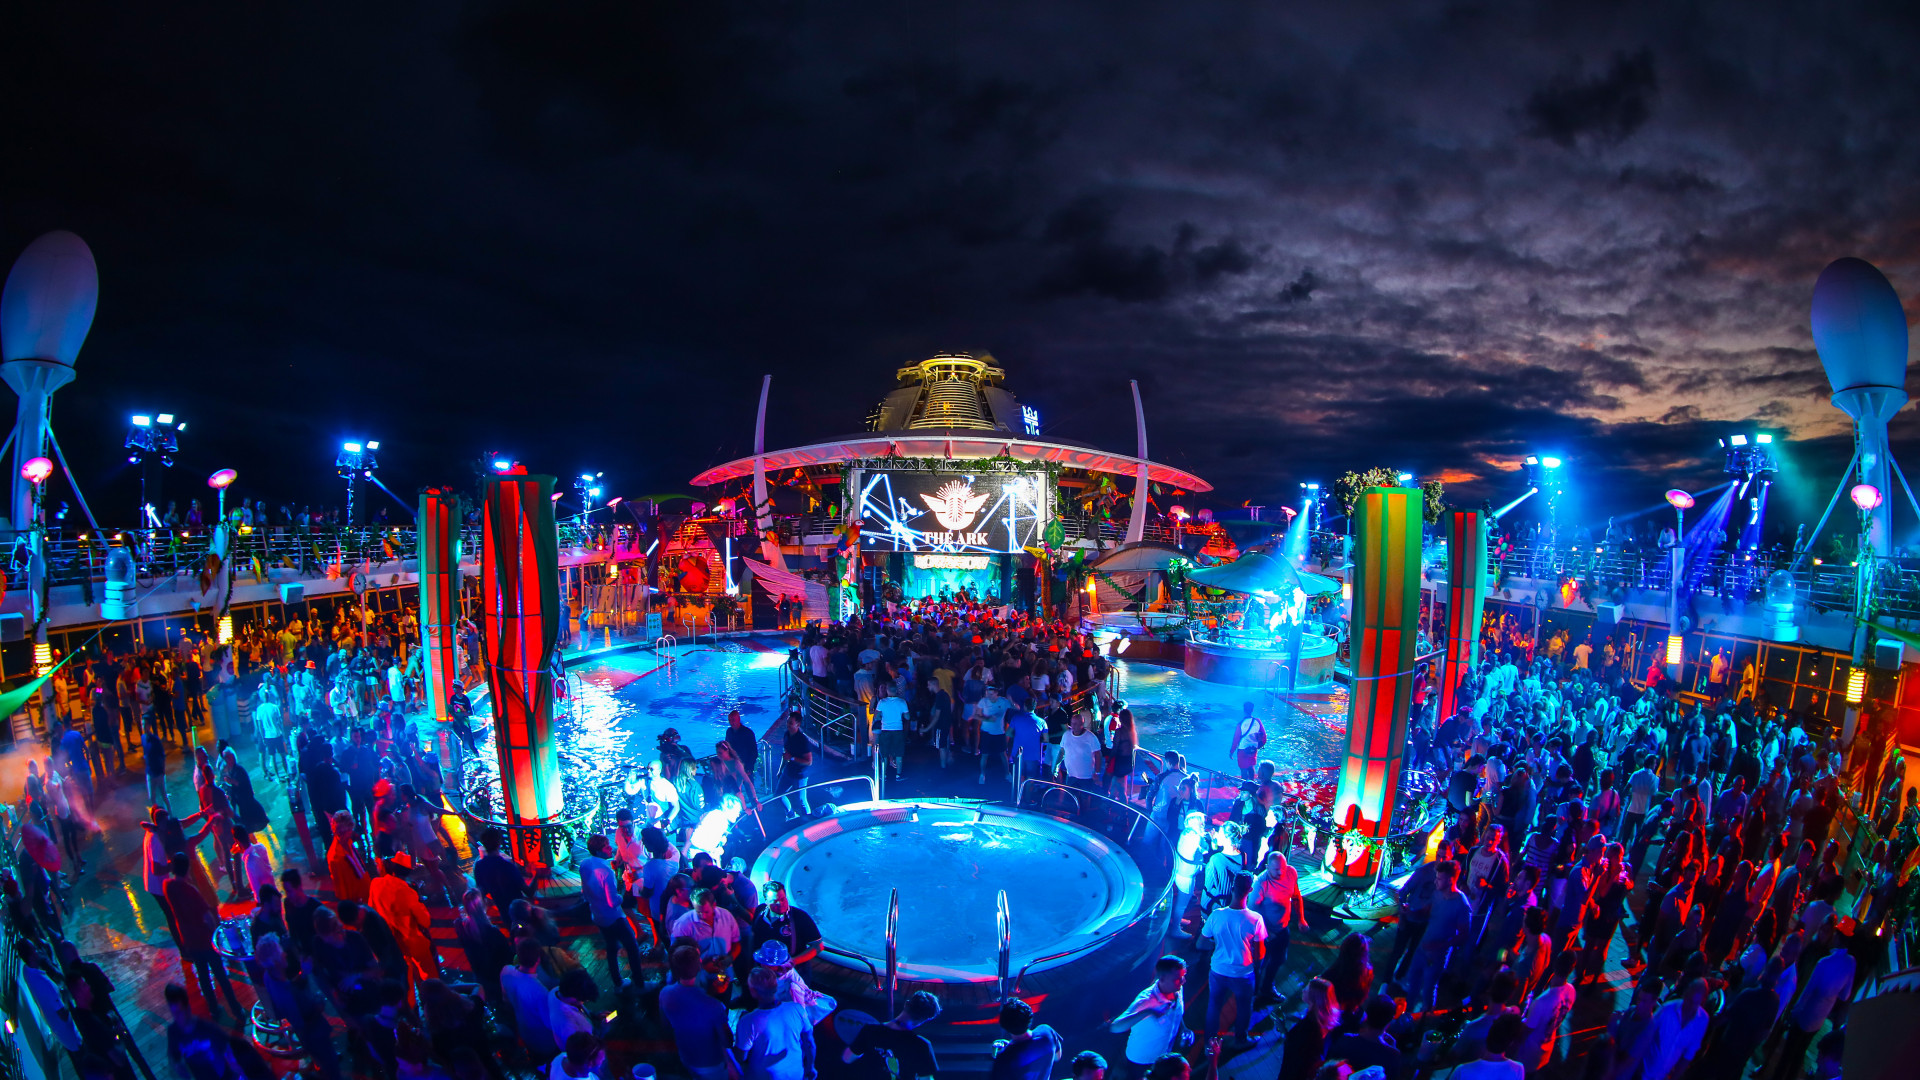 Dancing on the top-deck of The Ark festival cruise ship